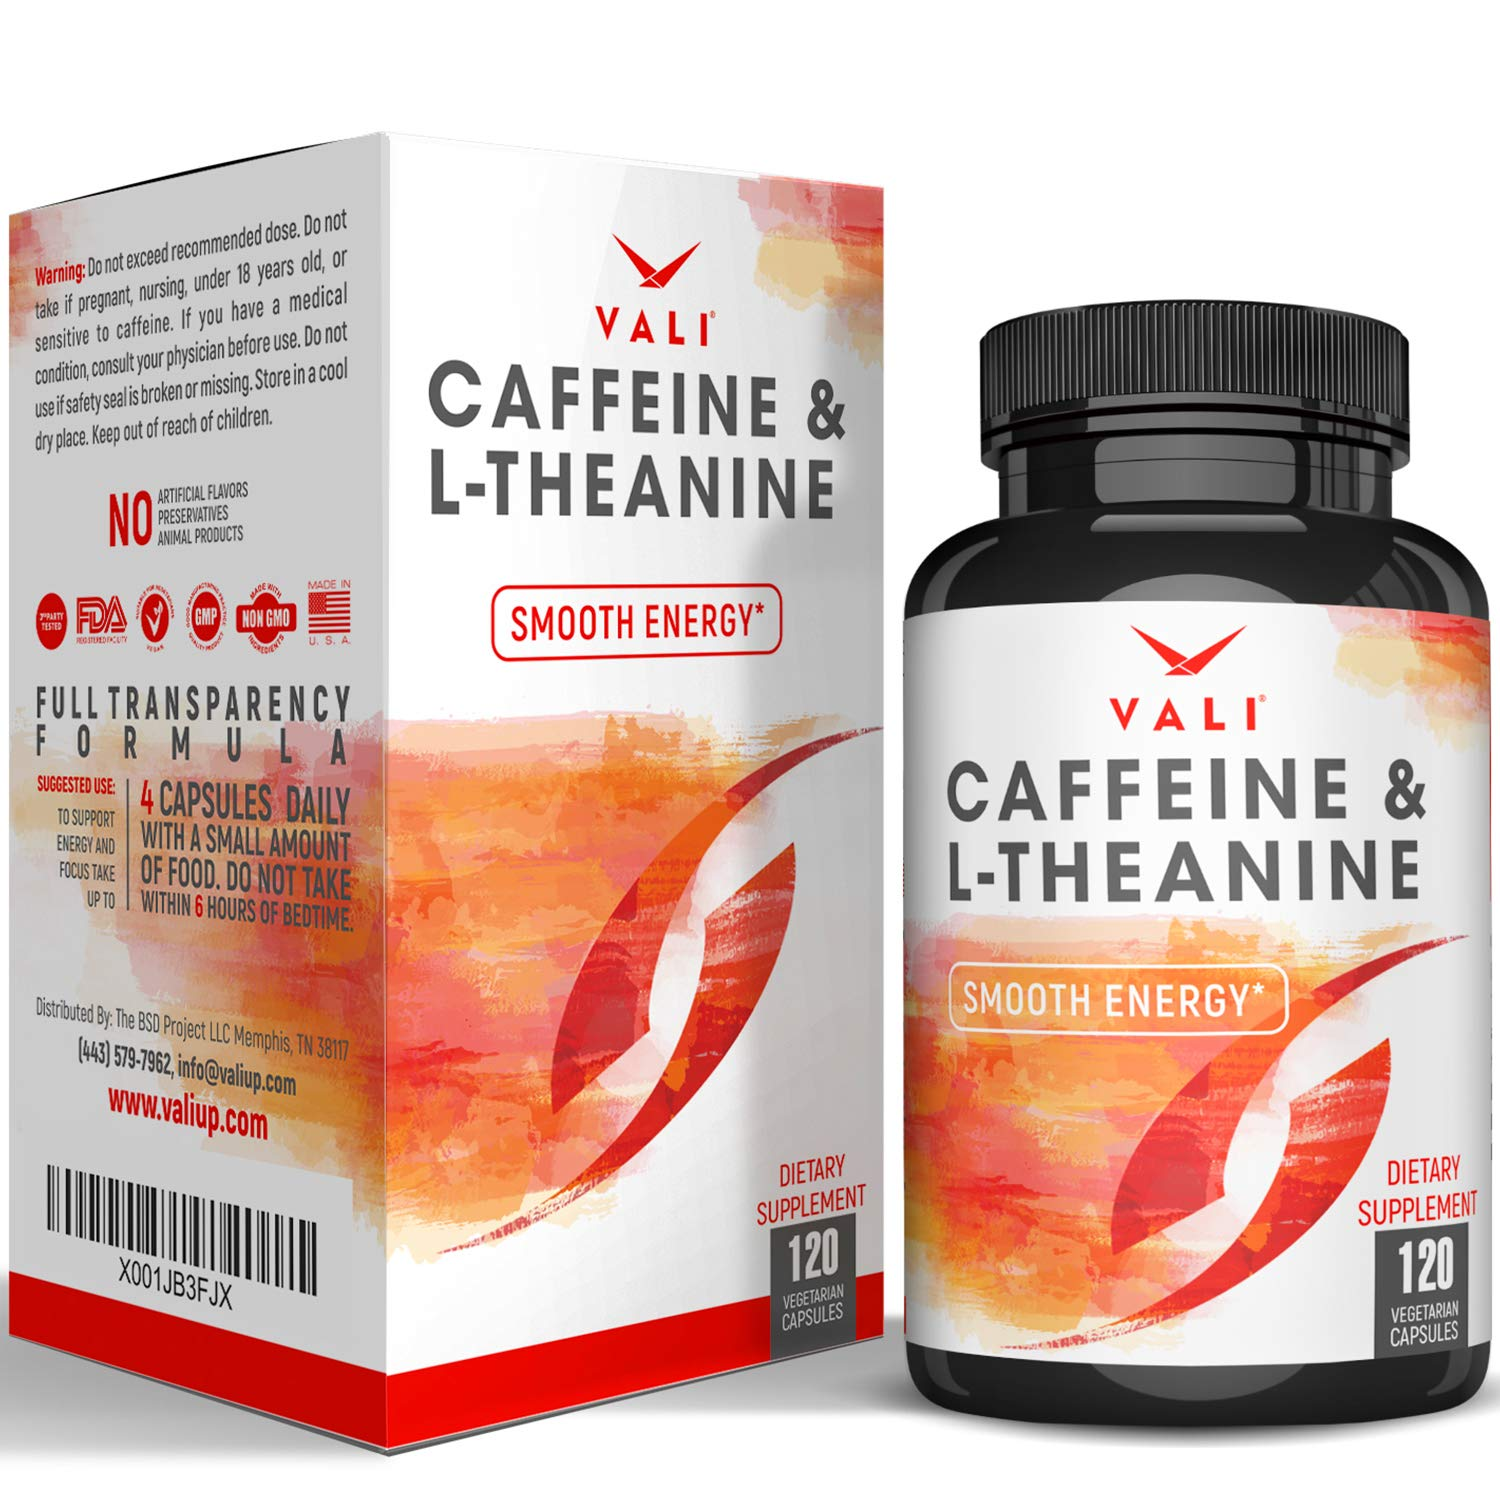 Caffeine 50mg with L-Theanine 100mg Pills for Smooth Energy, Focus, Clarity - 120 Veggie Capsules. Natural Cognitive Performance Stack for Focused Mind & Body. Extra Strength, No Jitters & No Crash by VALI